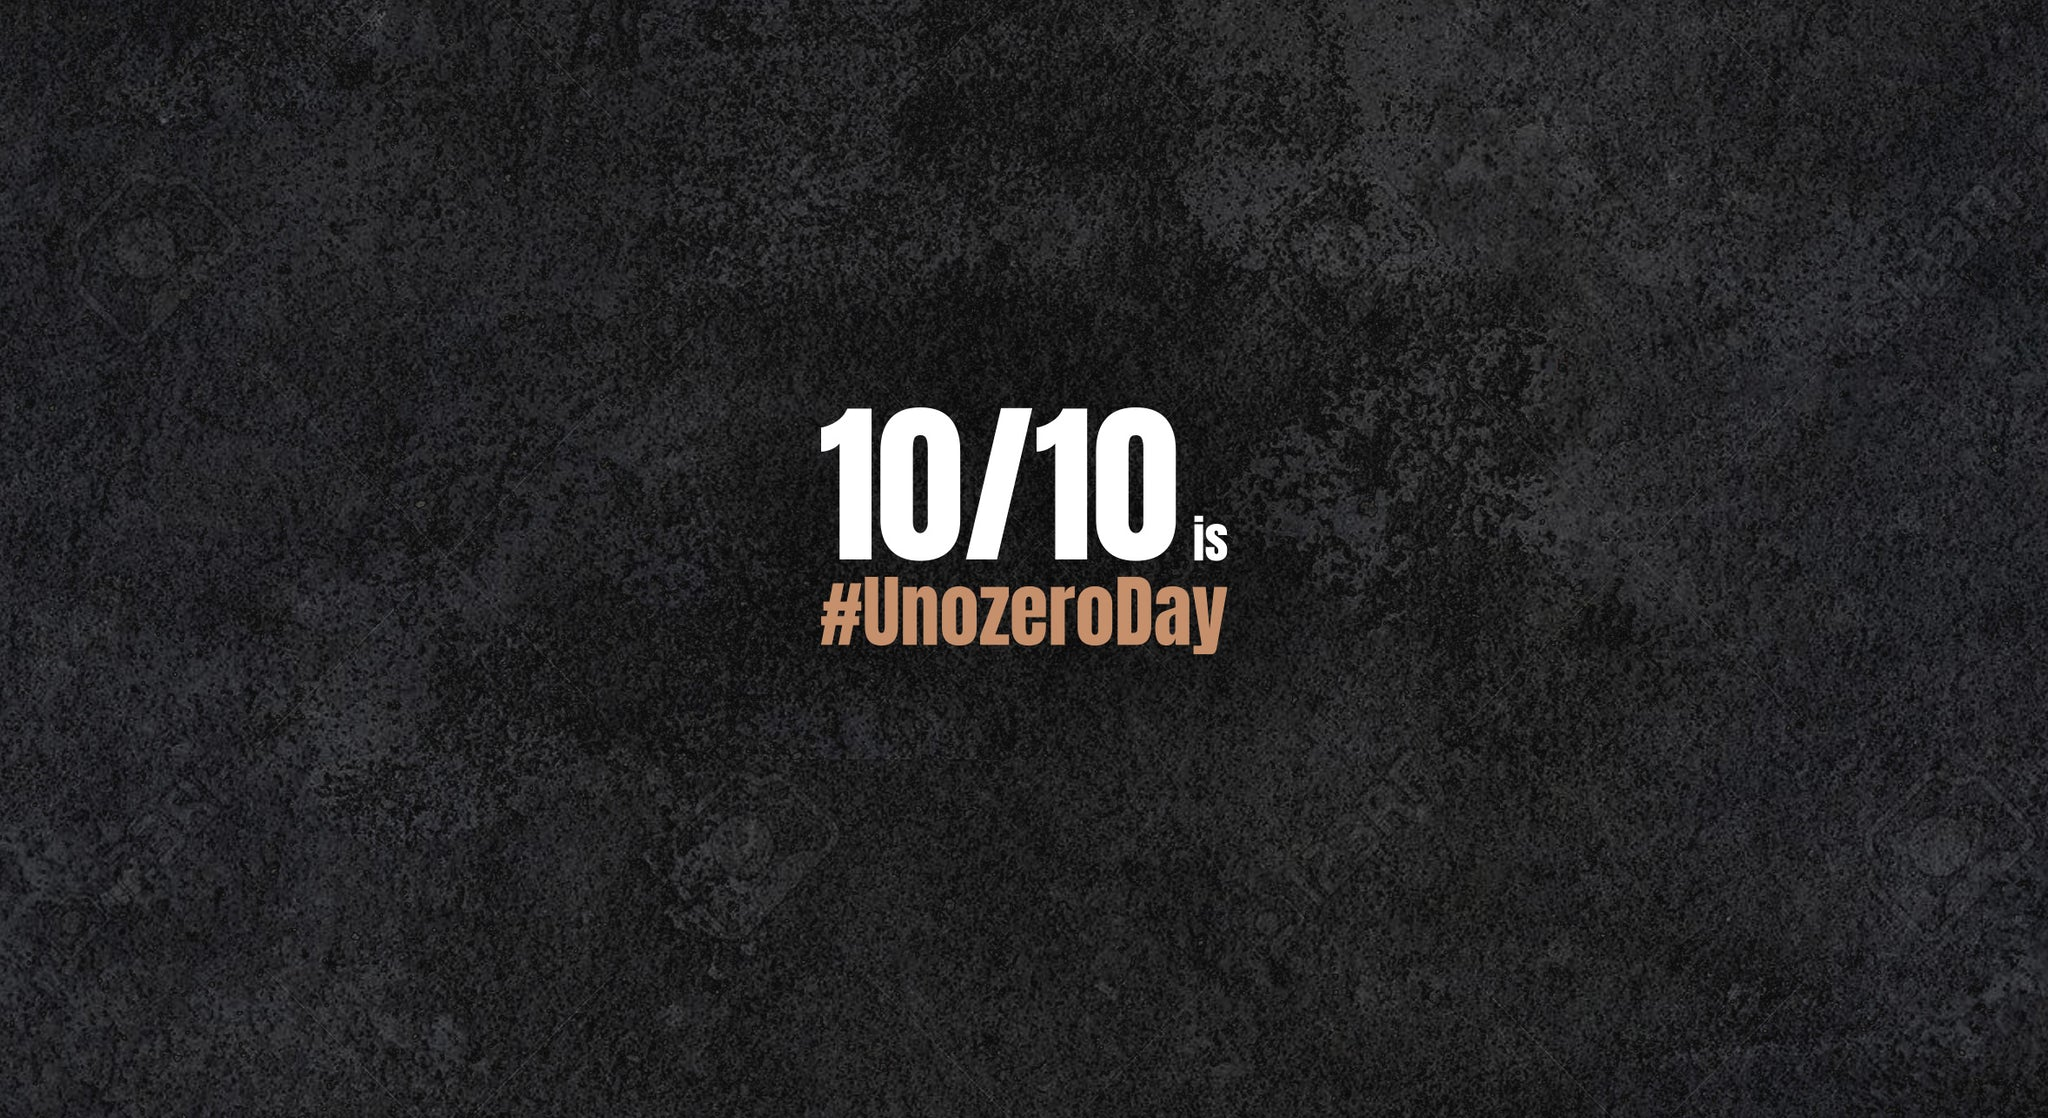 October 10th Marks The First Ever #UnozeroDay